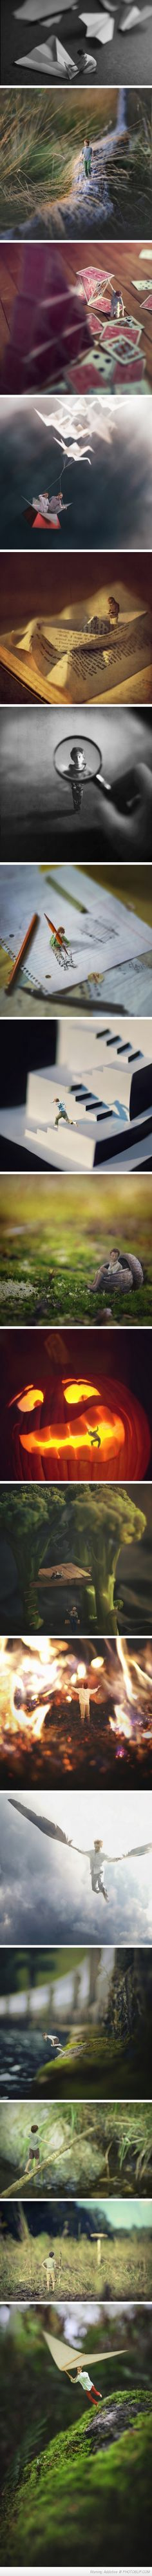 14 Year Old Photographers Surreal, Miniaturized Self Portraits<< idea for conceptual self portrait assignment